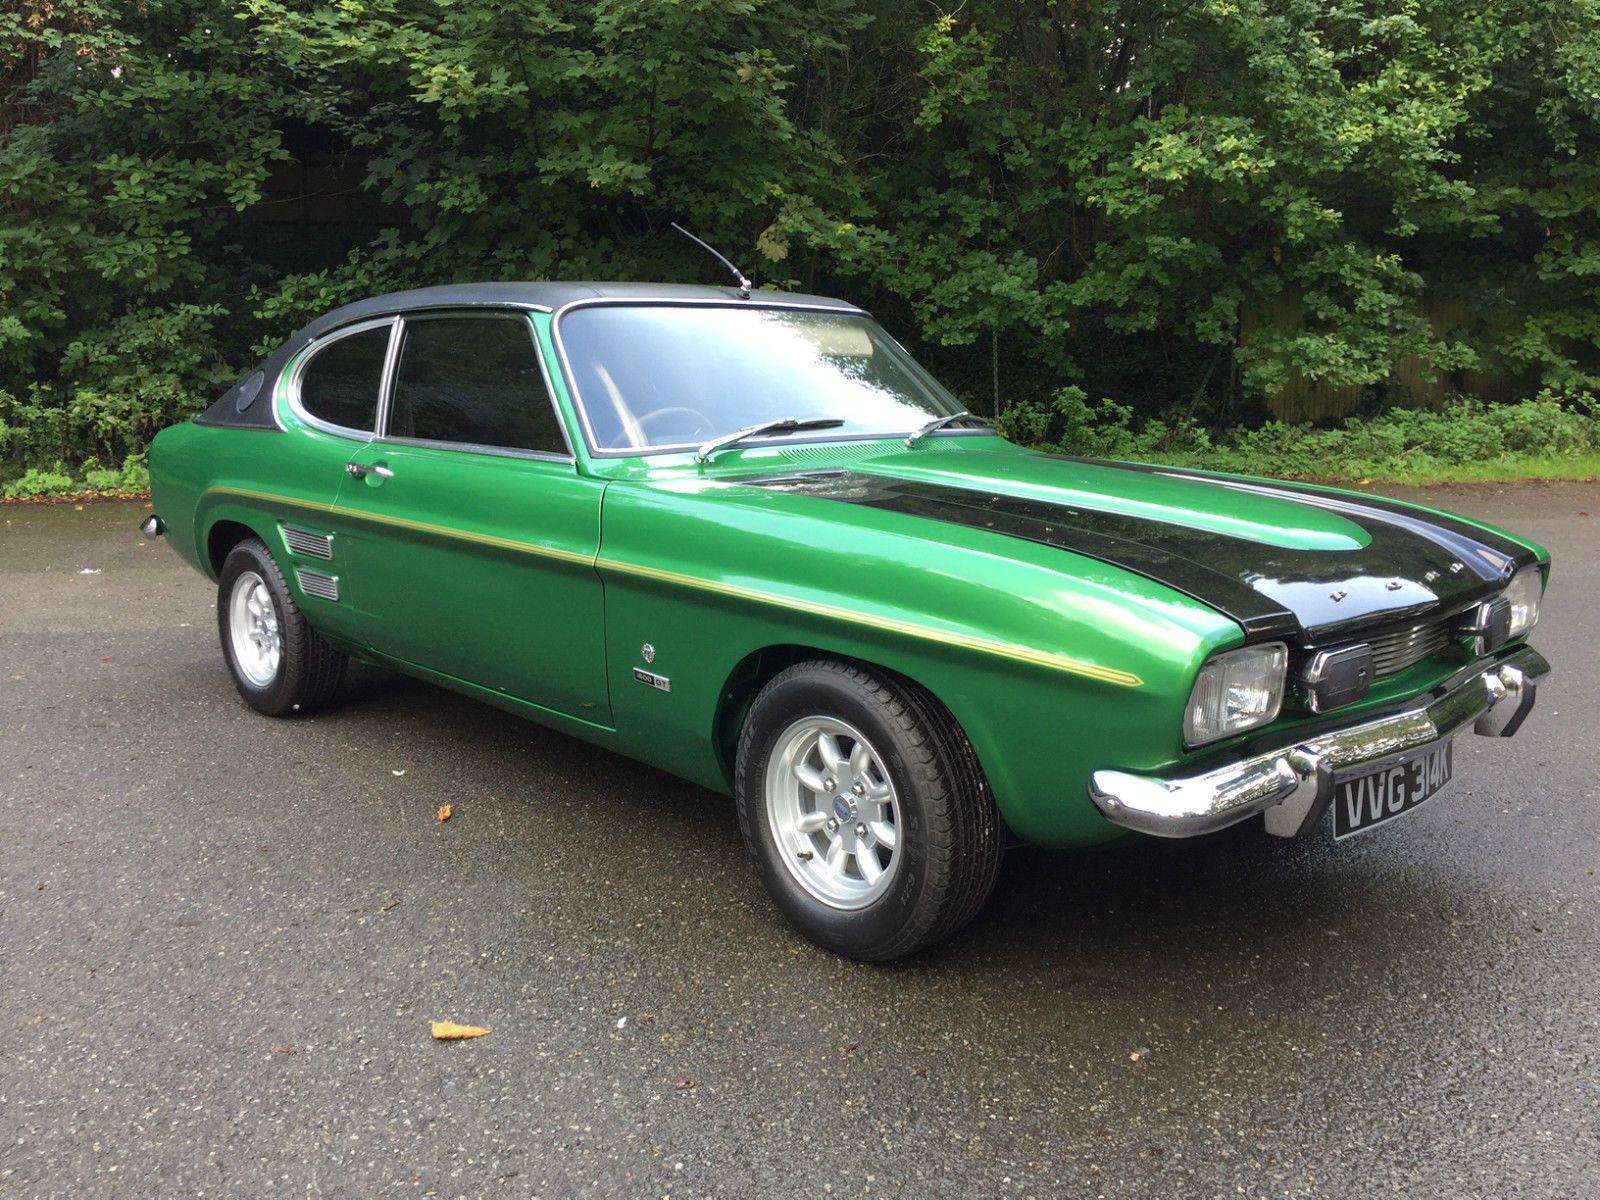 Http Www Ebay Co Uk Itm 1972 Ford Capri Mk1 1600gt Svo Best In The World 272416968115 Hash Item3f6d510db3 G Vuiaaoswmllybman Ford Capri Ford Capri